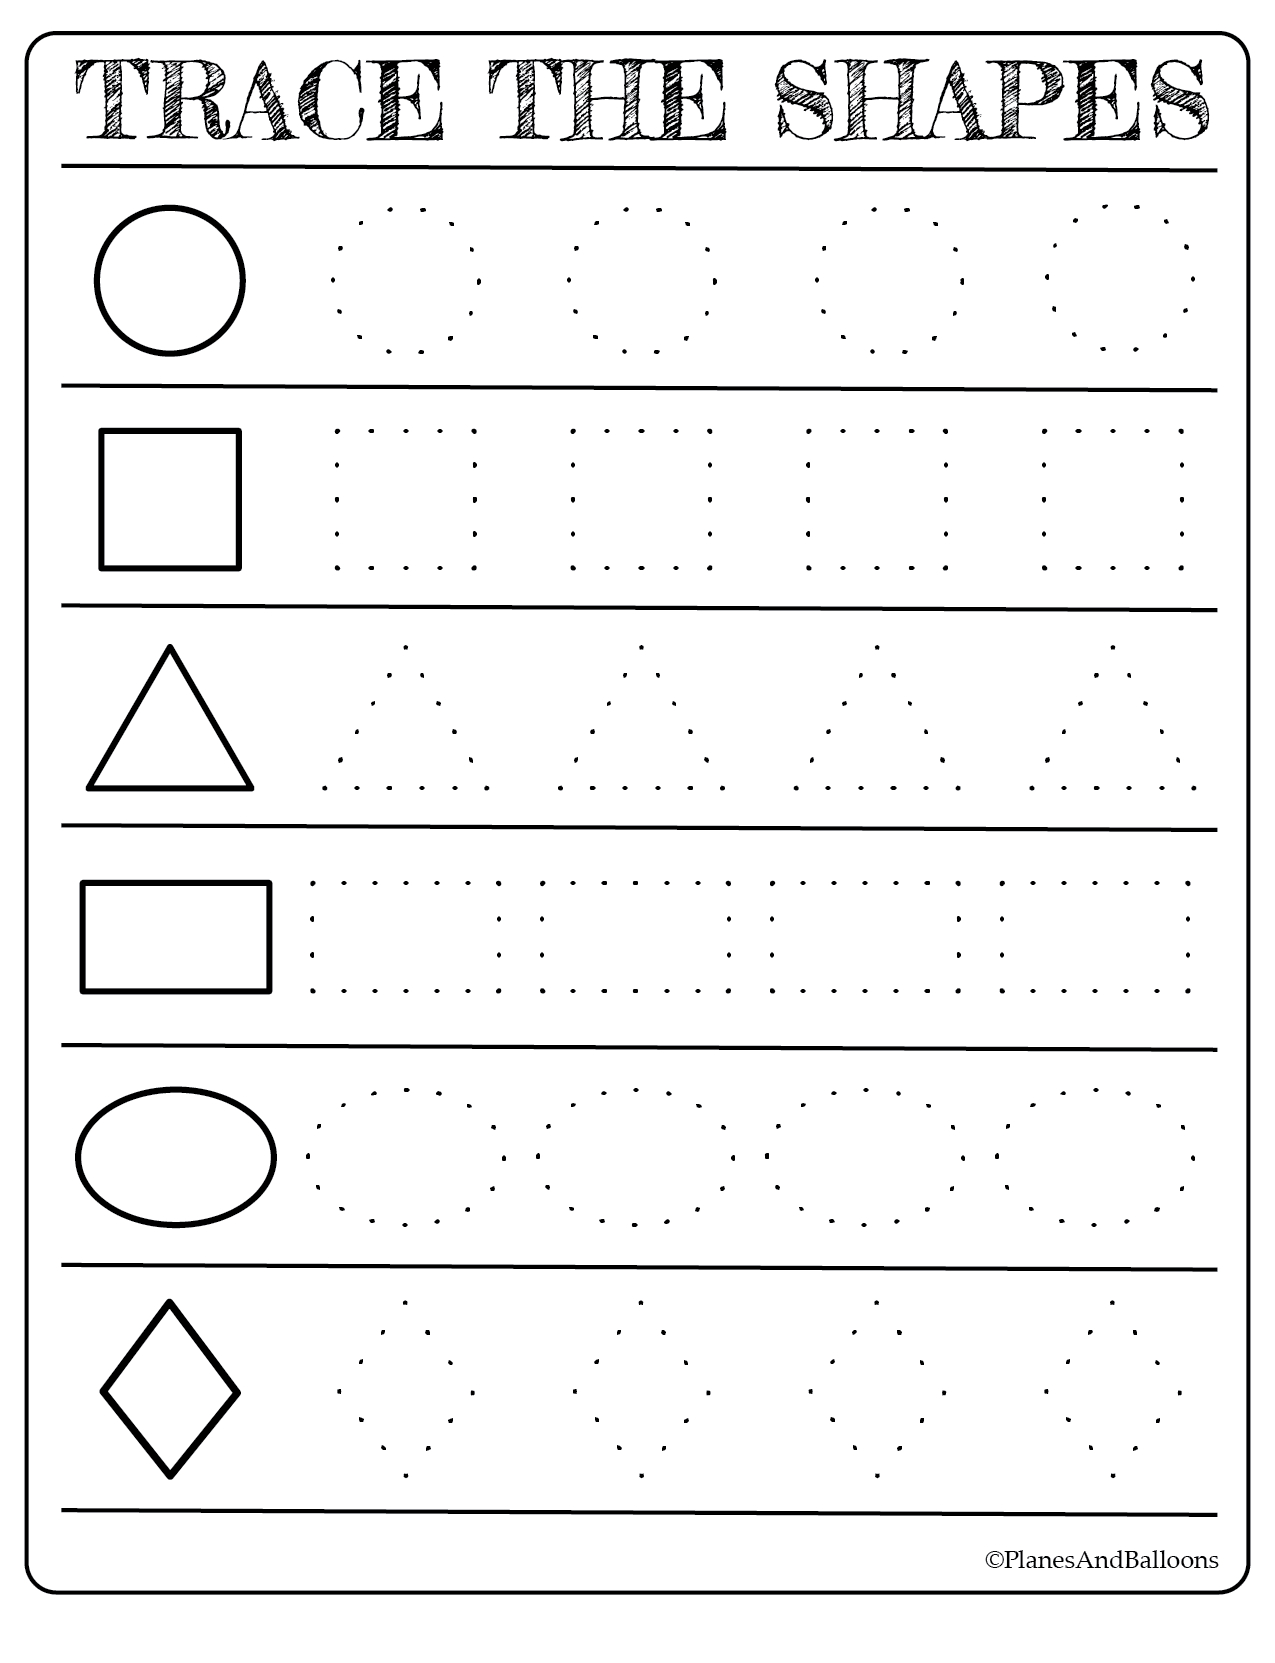 Free Printable Shapes Worksheets For Toddlers And Preschoolers - Free Printable Toddler Learning Worksheets